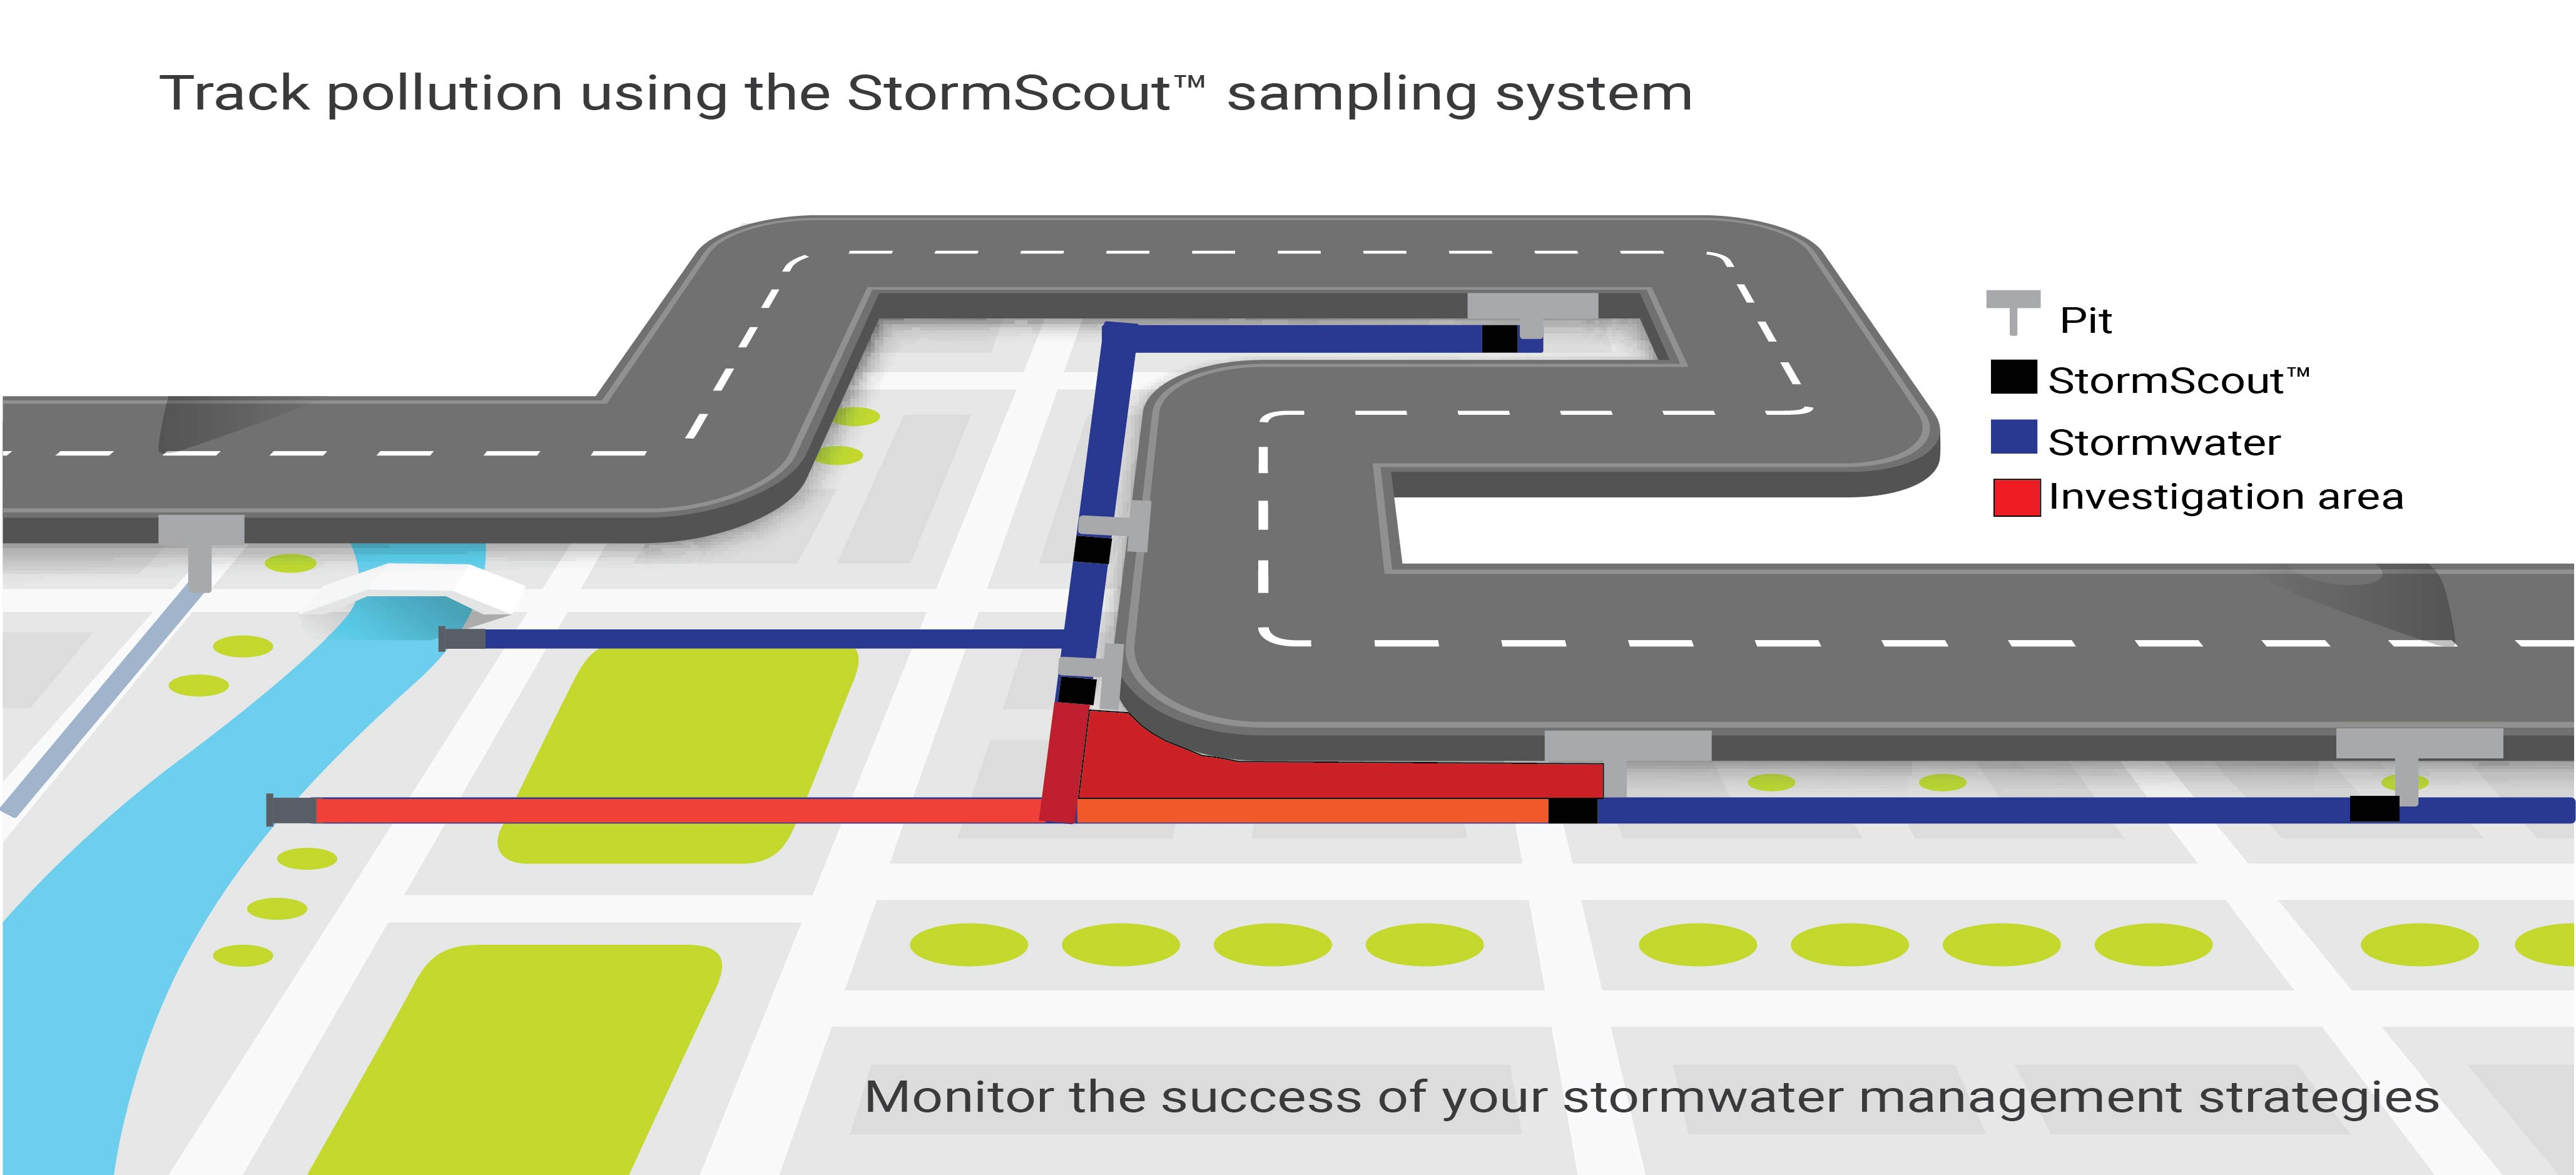 StormScout sampling system